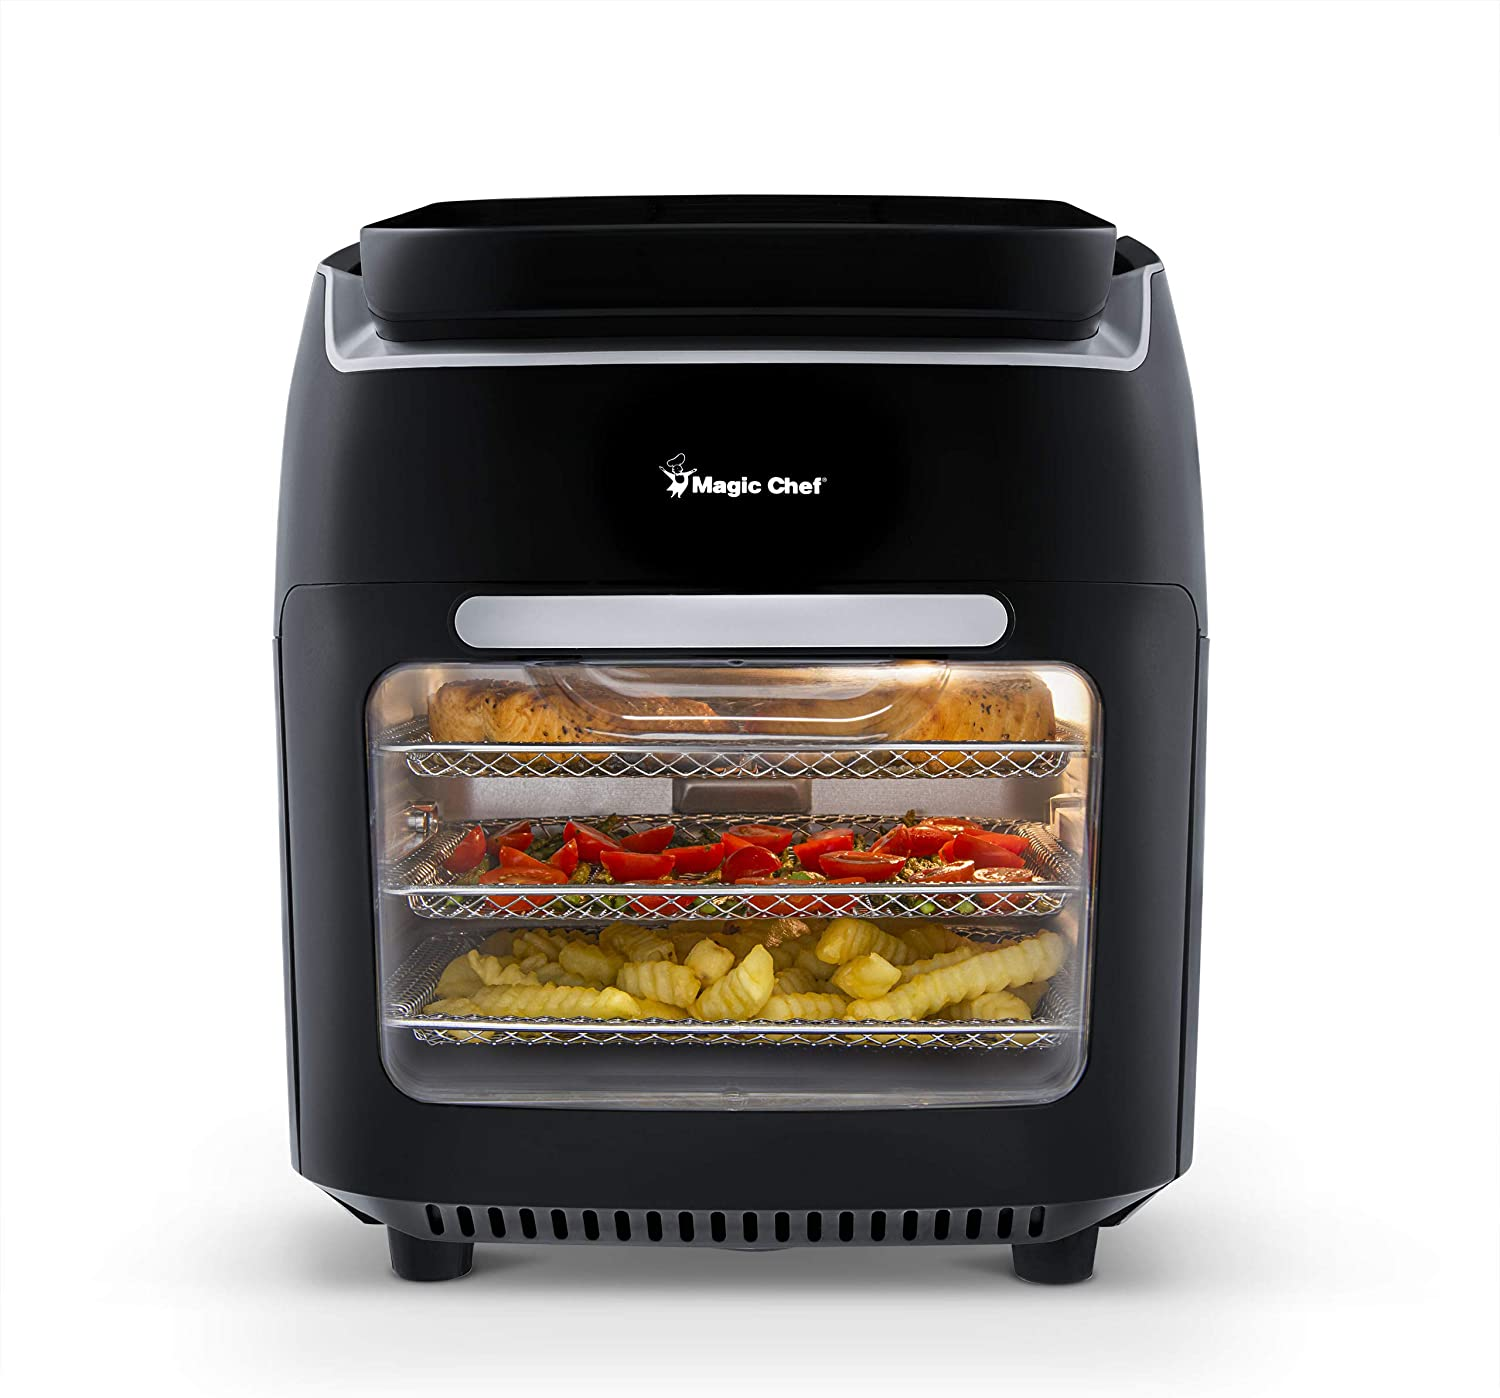 Magic Chef Air Fryer Oven 10.5 Quart Digital Display Airfryer, Convection Toaster, Dehydrator, and Rotisserie, MAF105BKD0 Black, Medium